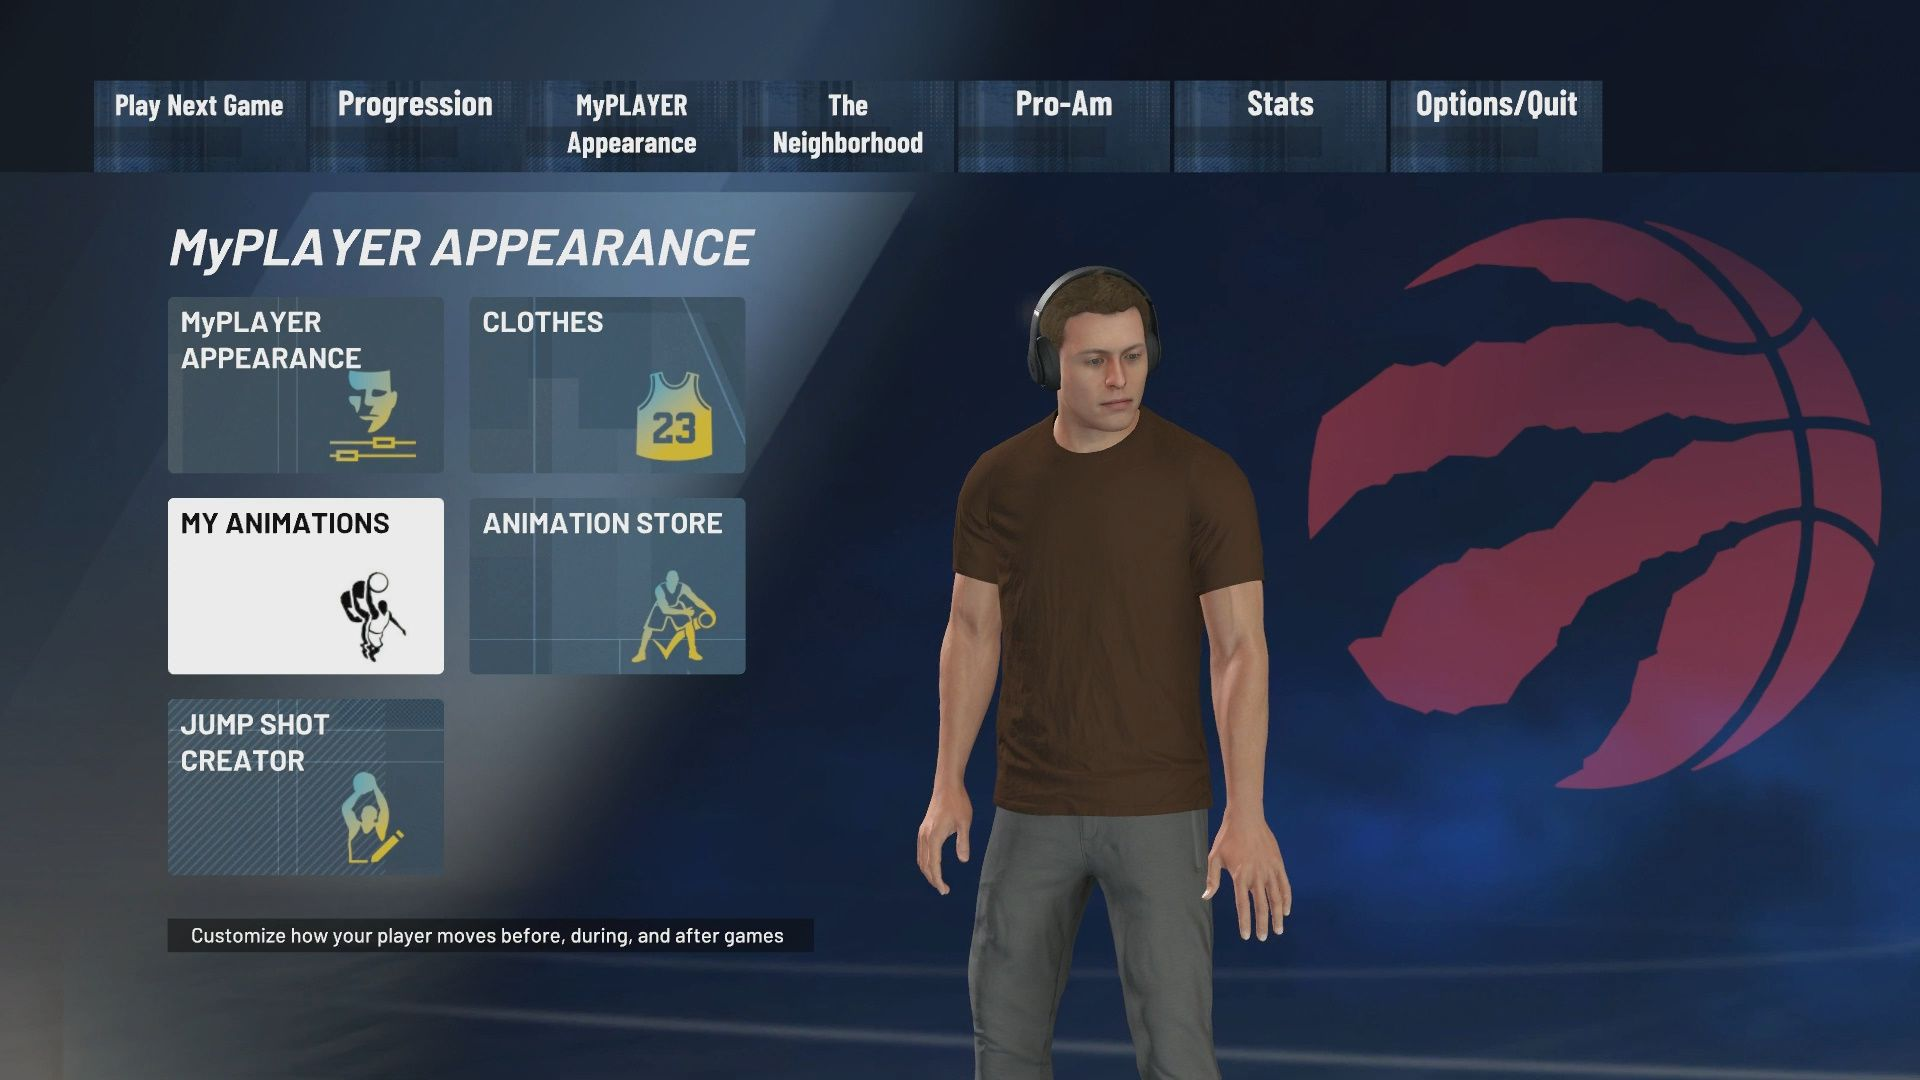 How To Set Flashy Passes In Nba 2k21